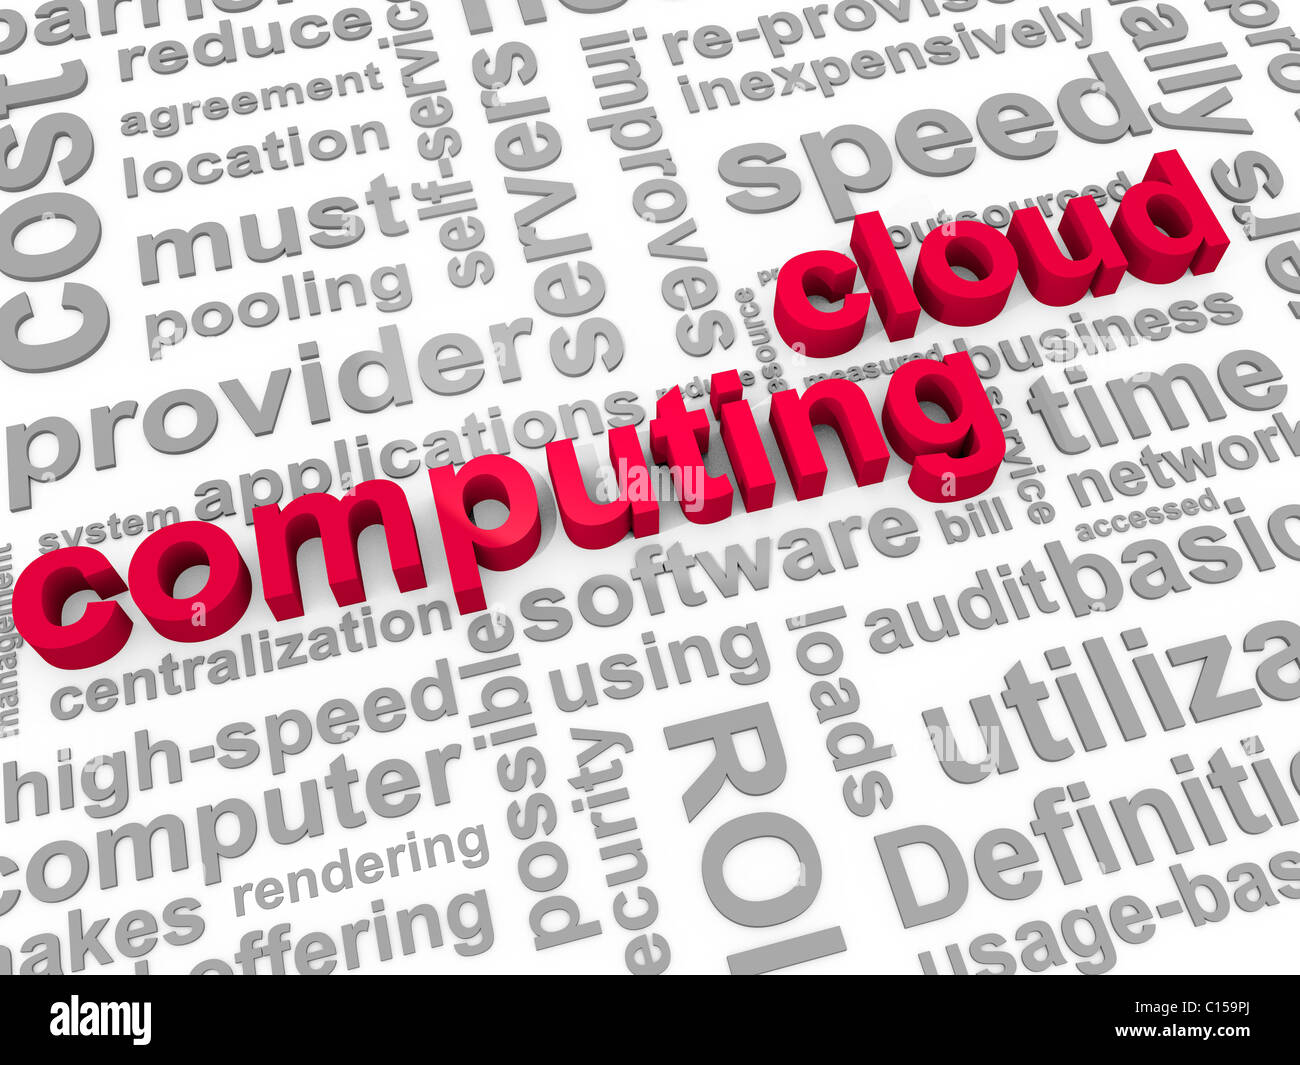 The Words Cloud Computing surrounded by relevant phrases - Stock Image